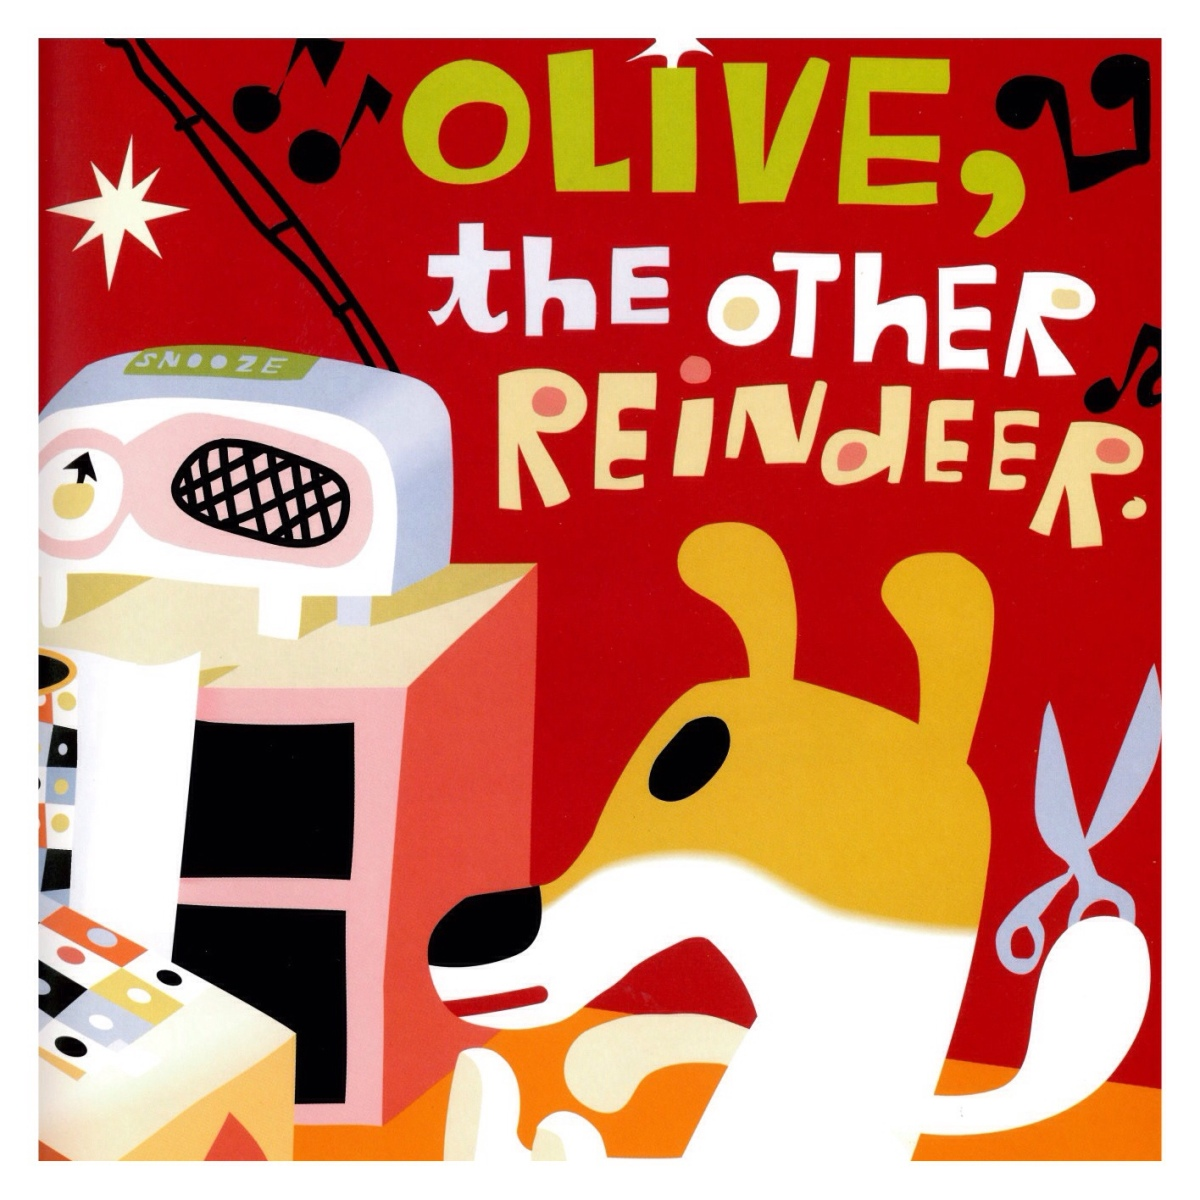 Olive, the Other Reindeer by J. Otto Seibold and Vivian Walsh